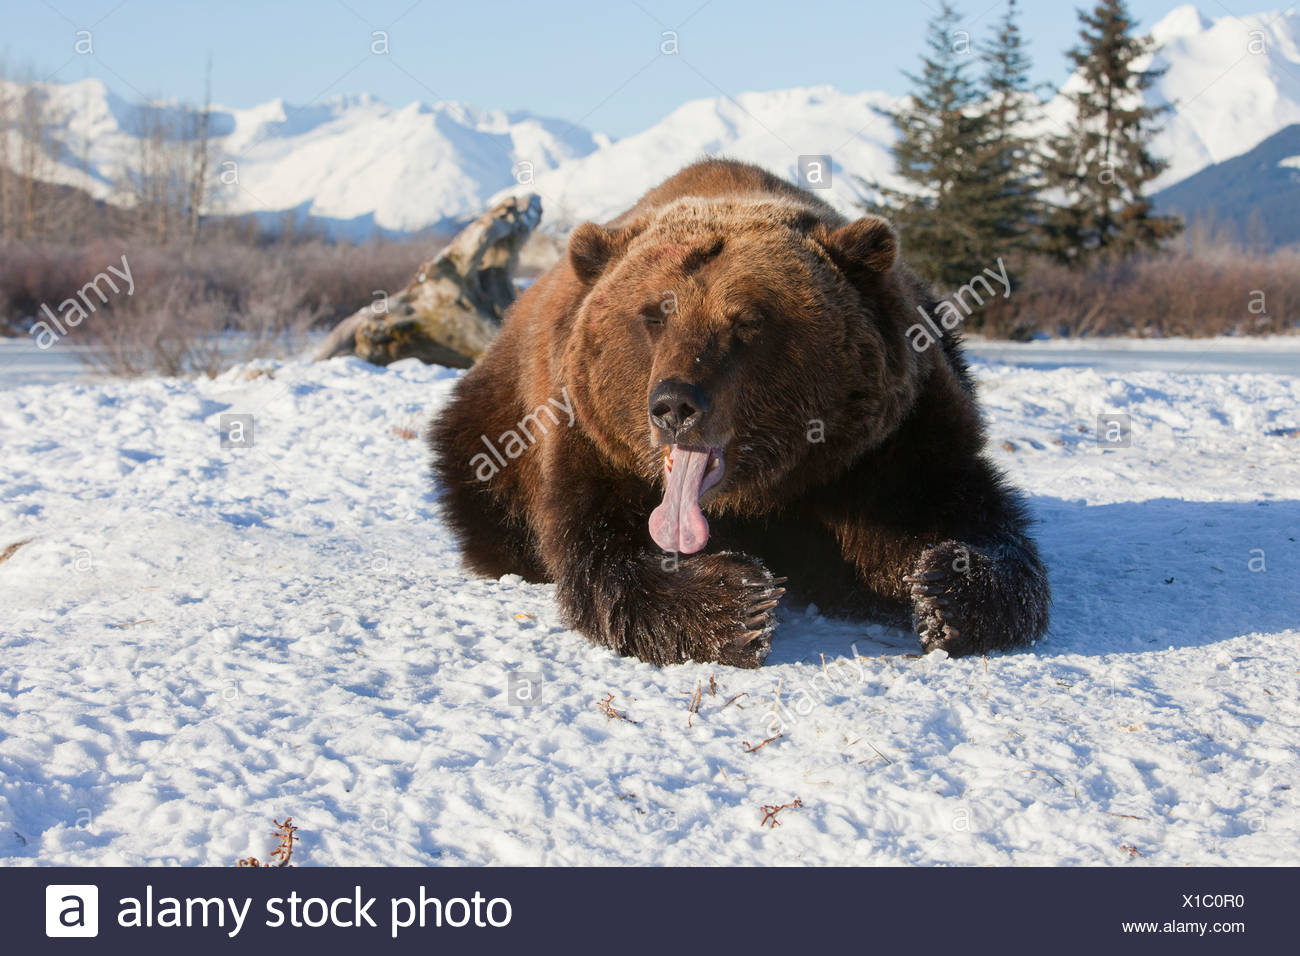 CAPTIVE: Grizzly laying in snow and has its long tongue sticking out, Southcentral Alaska - Stock Image